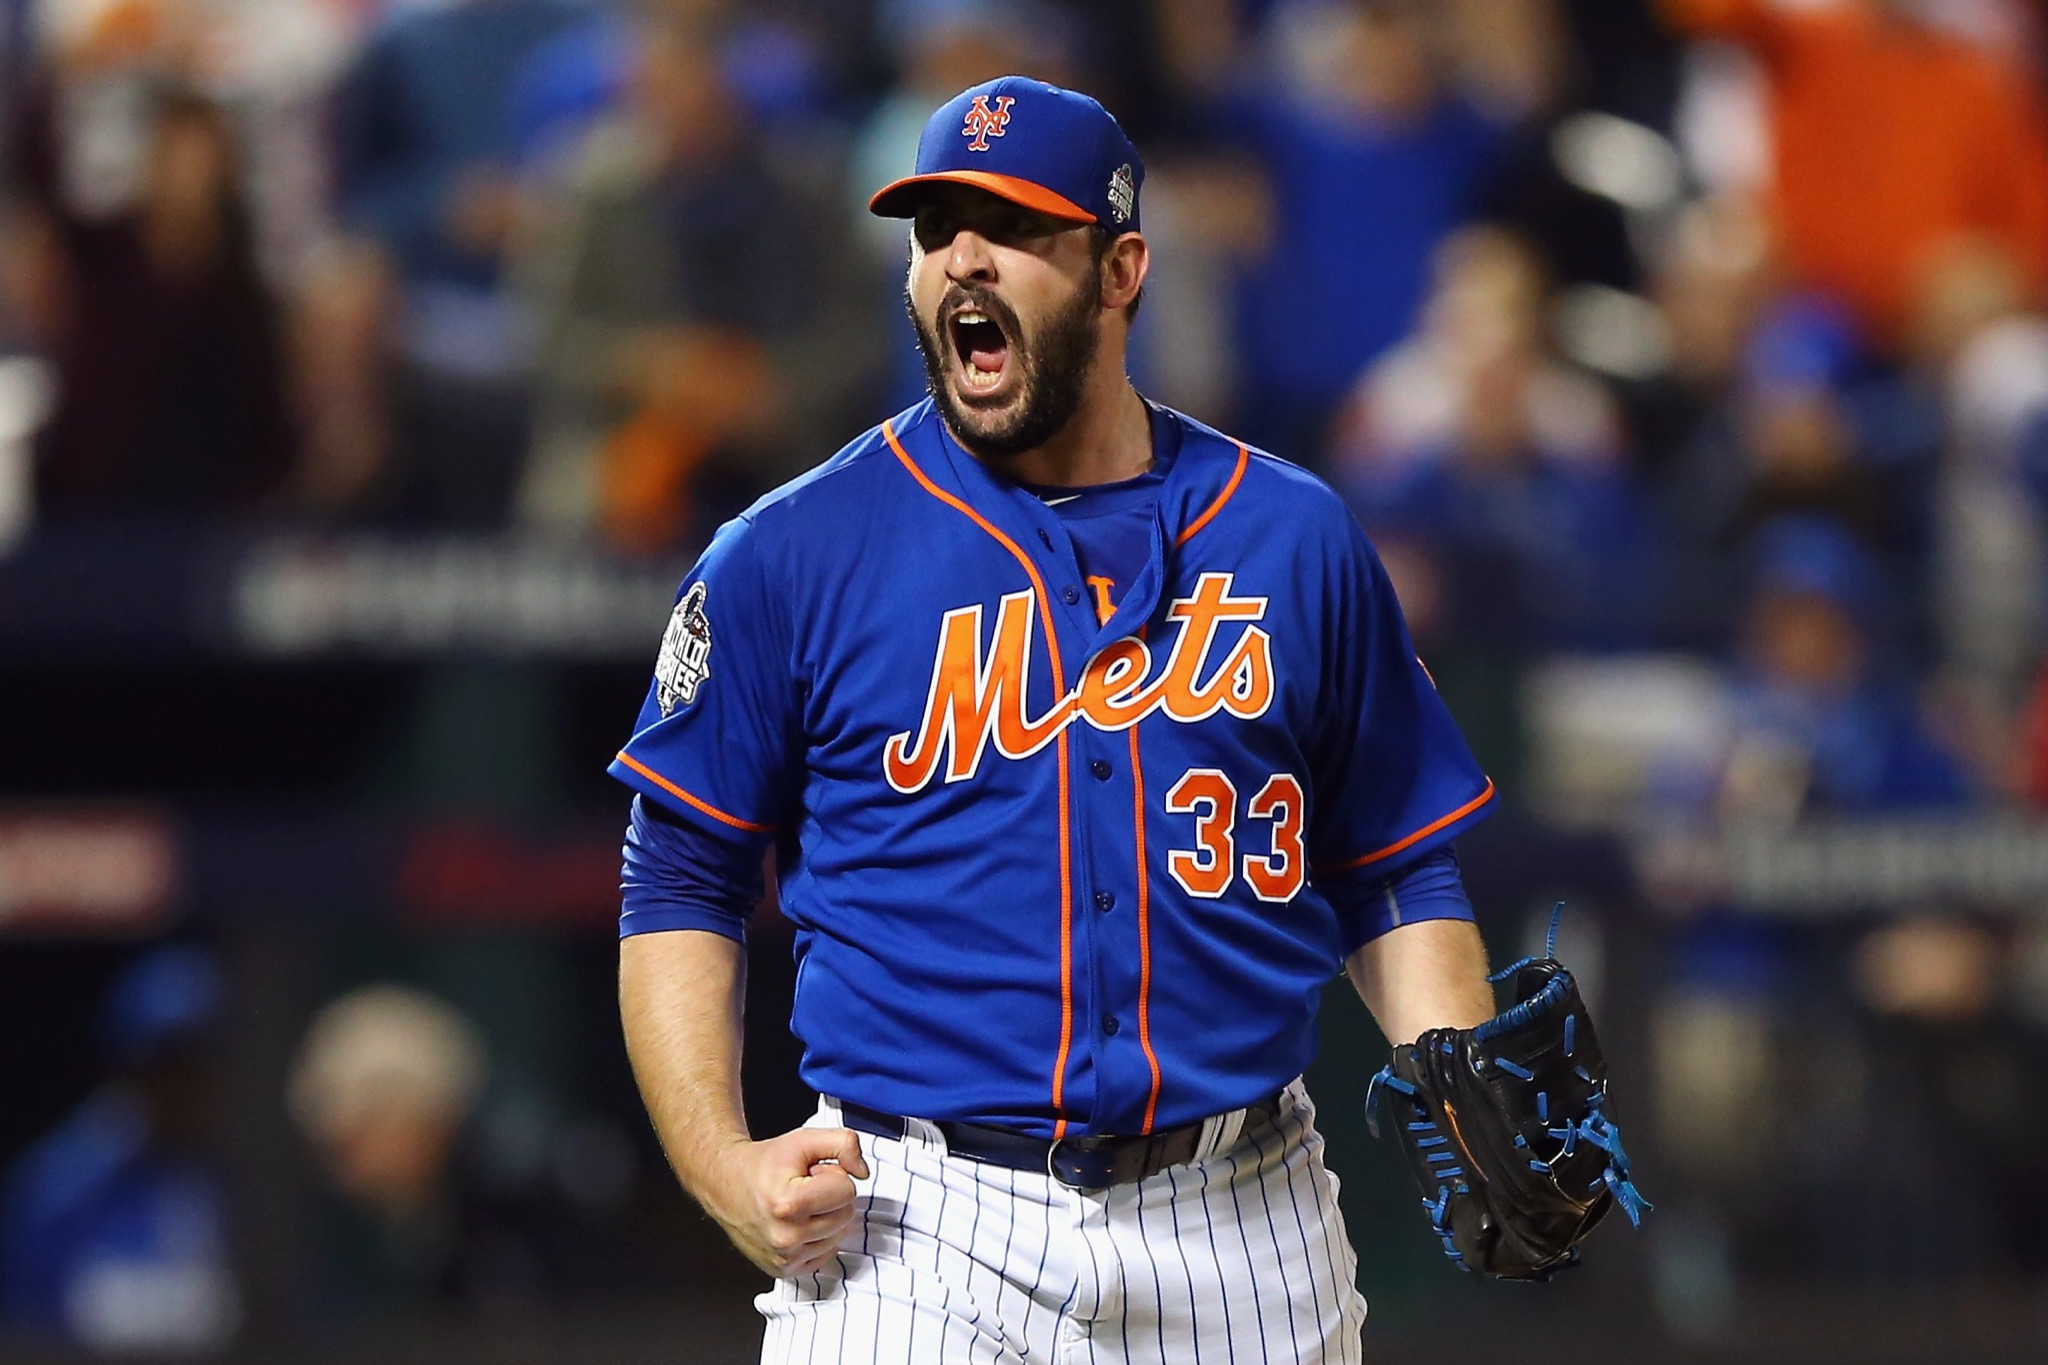 Turns Out Matt Harvey Was Suspended For Celebrating Cinco de Mayo A Bit Too Much